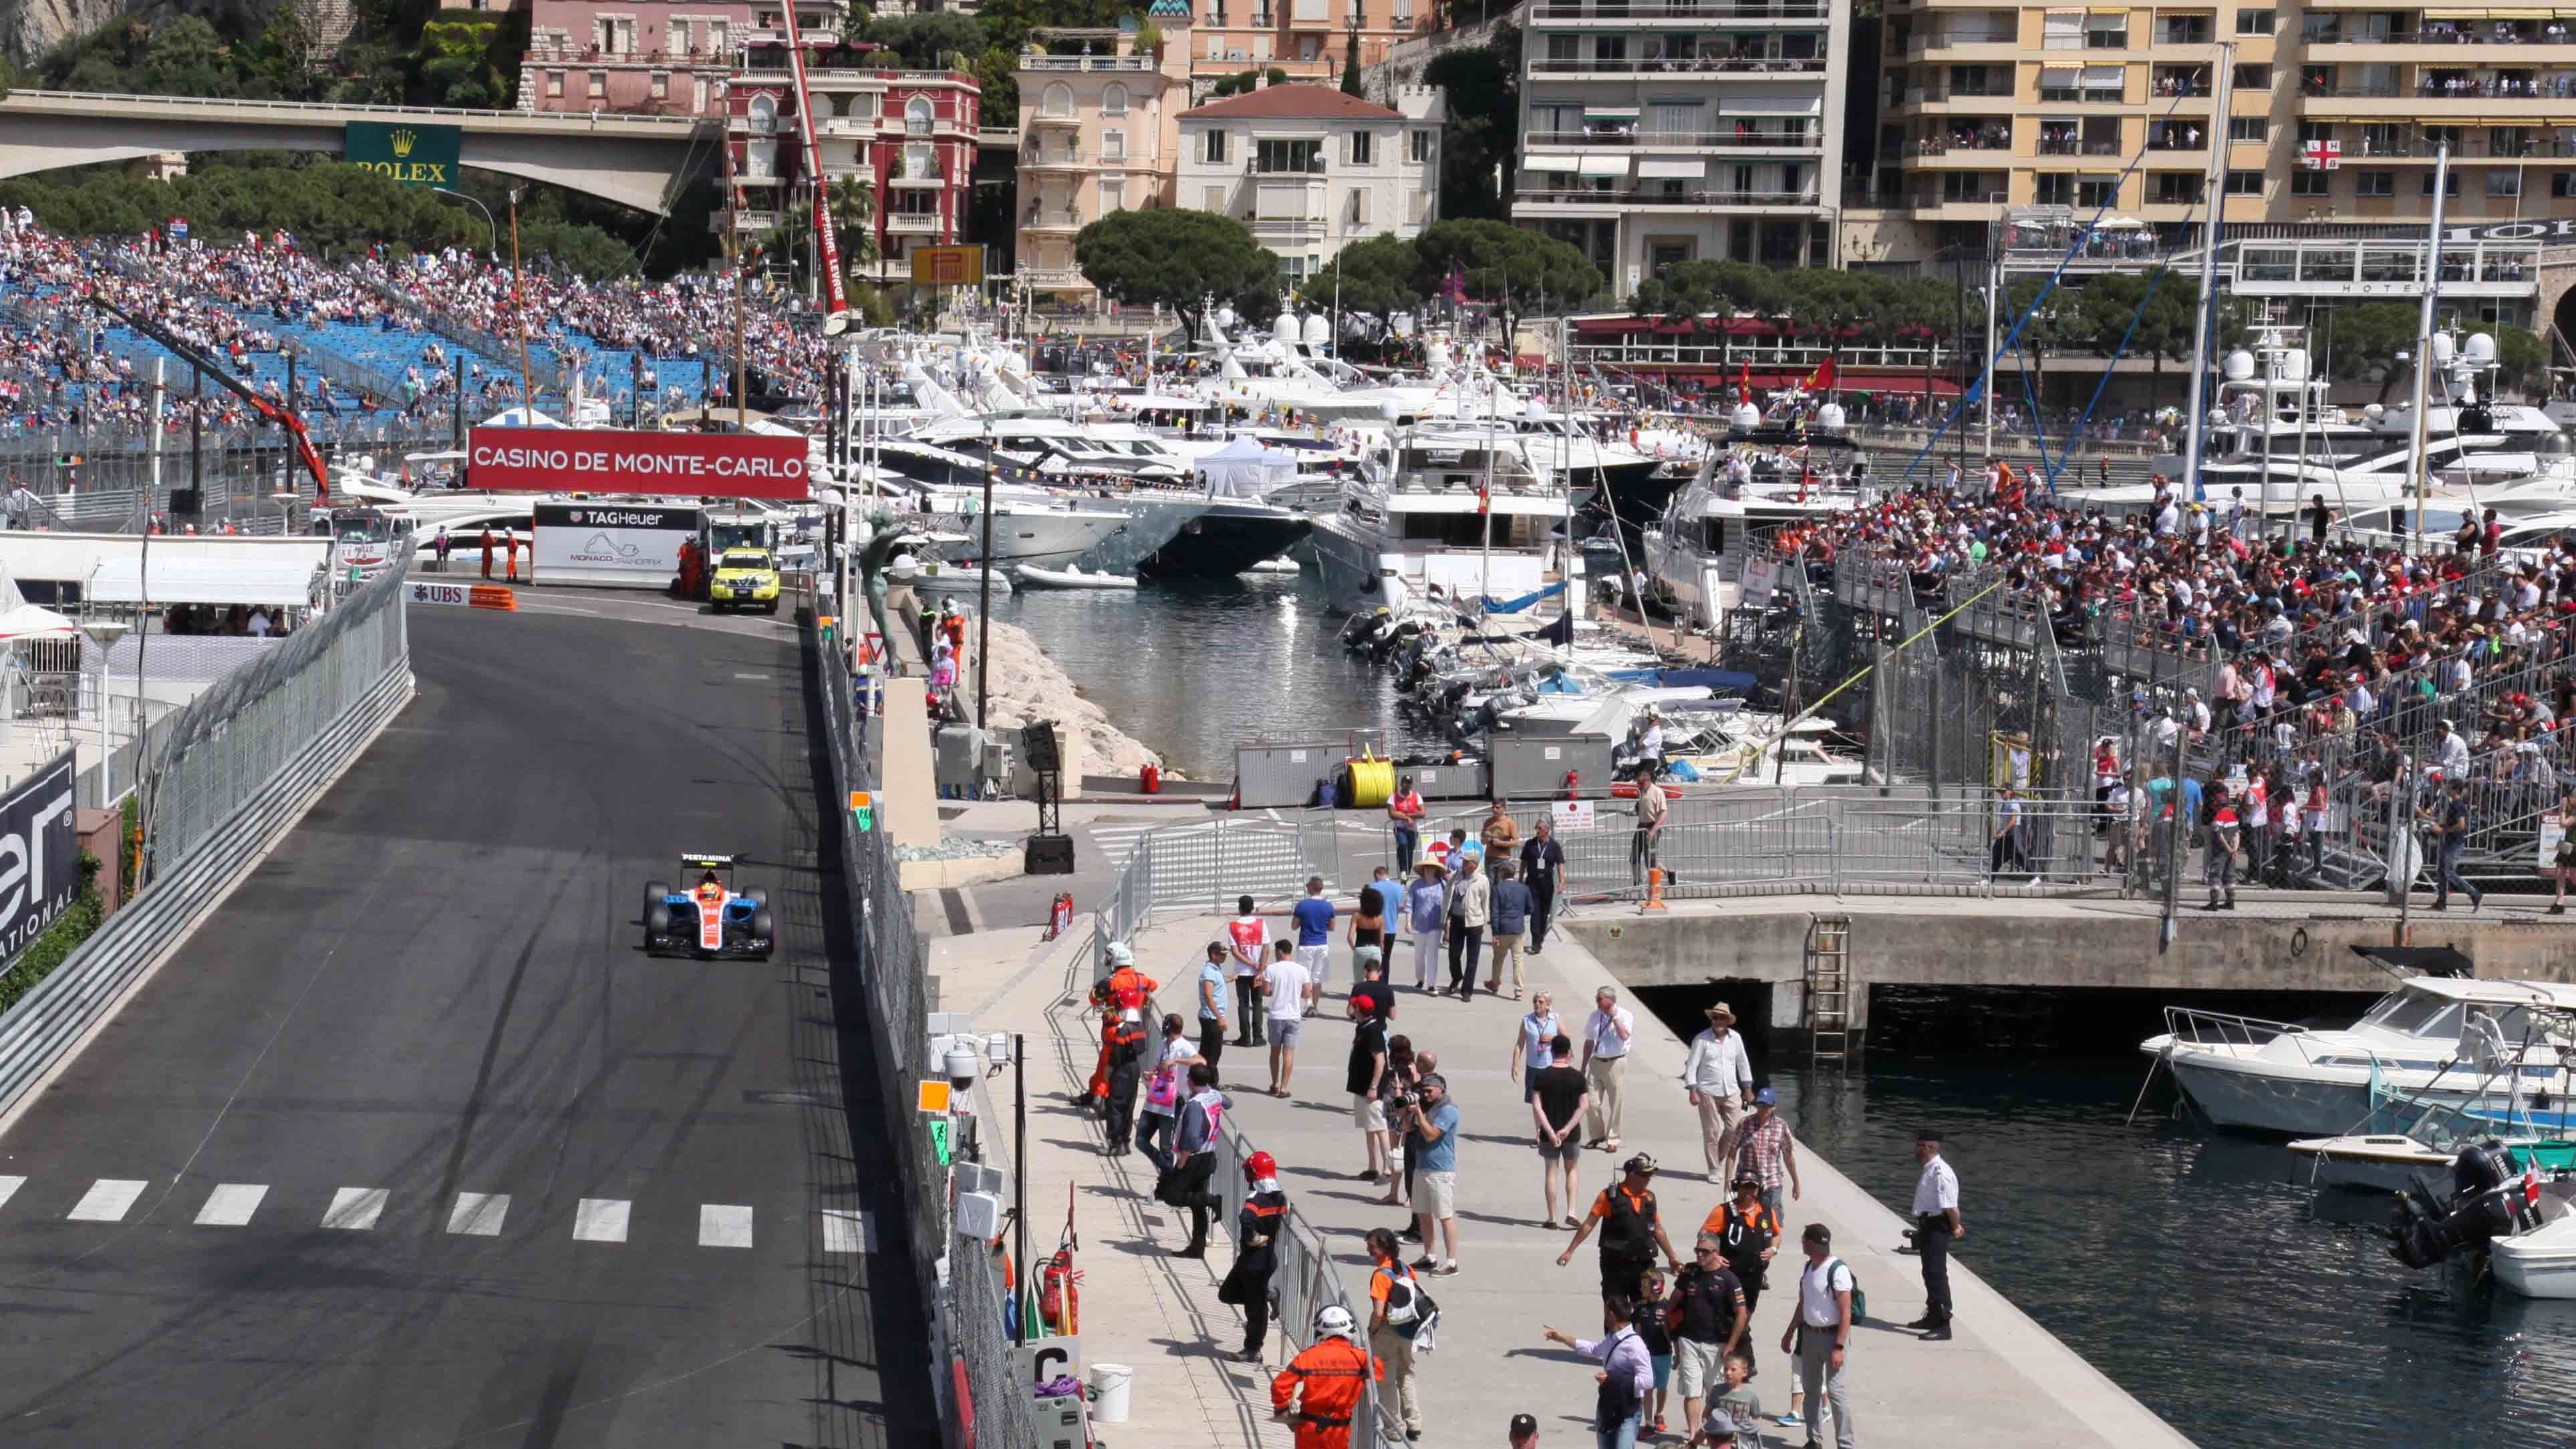 Photo Report: Behind The Scenes At The Monaco Grand Prix 2016 With TAG Heuer CEO Jean-Claude Biver Photo Report: Behind The Scenes At The Monaco Grand Prix 2016 With TAG Heuer CEO Jean-Claude Biver IMG 0505